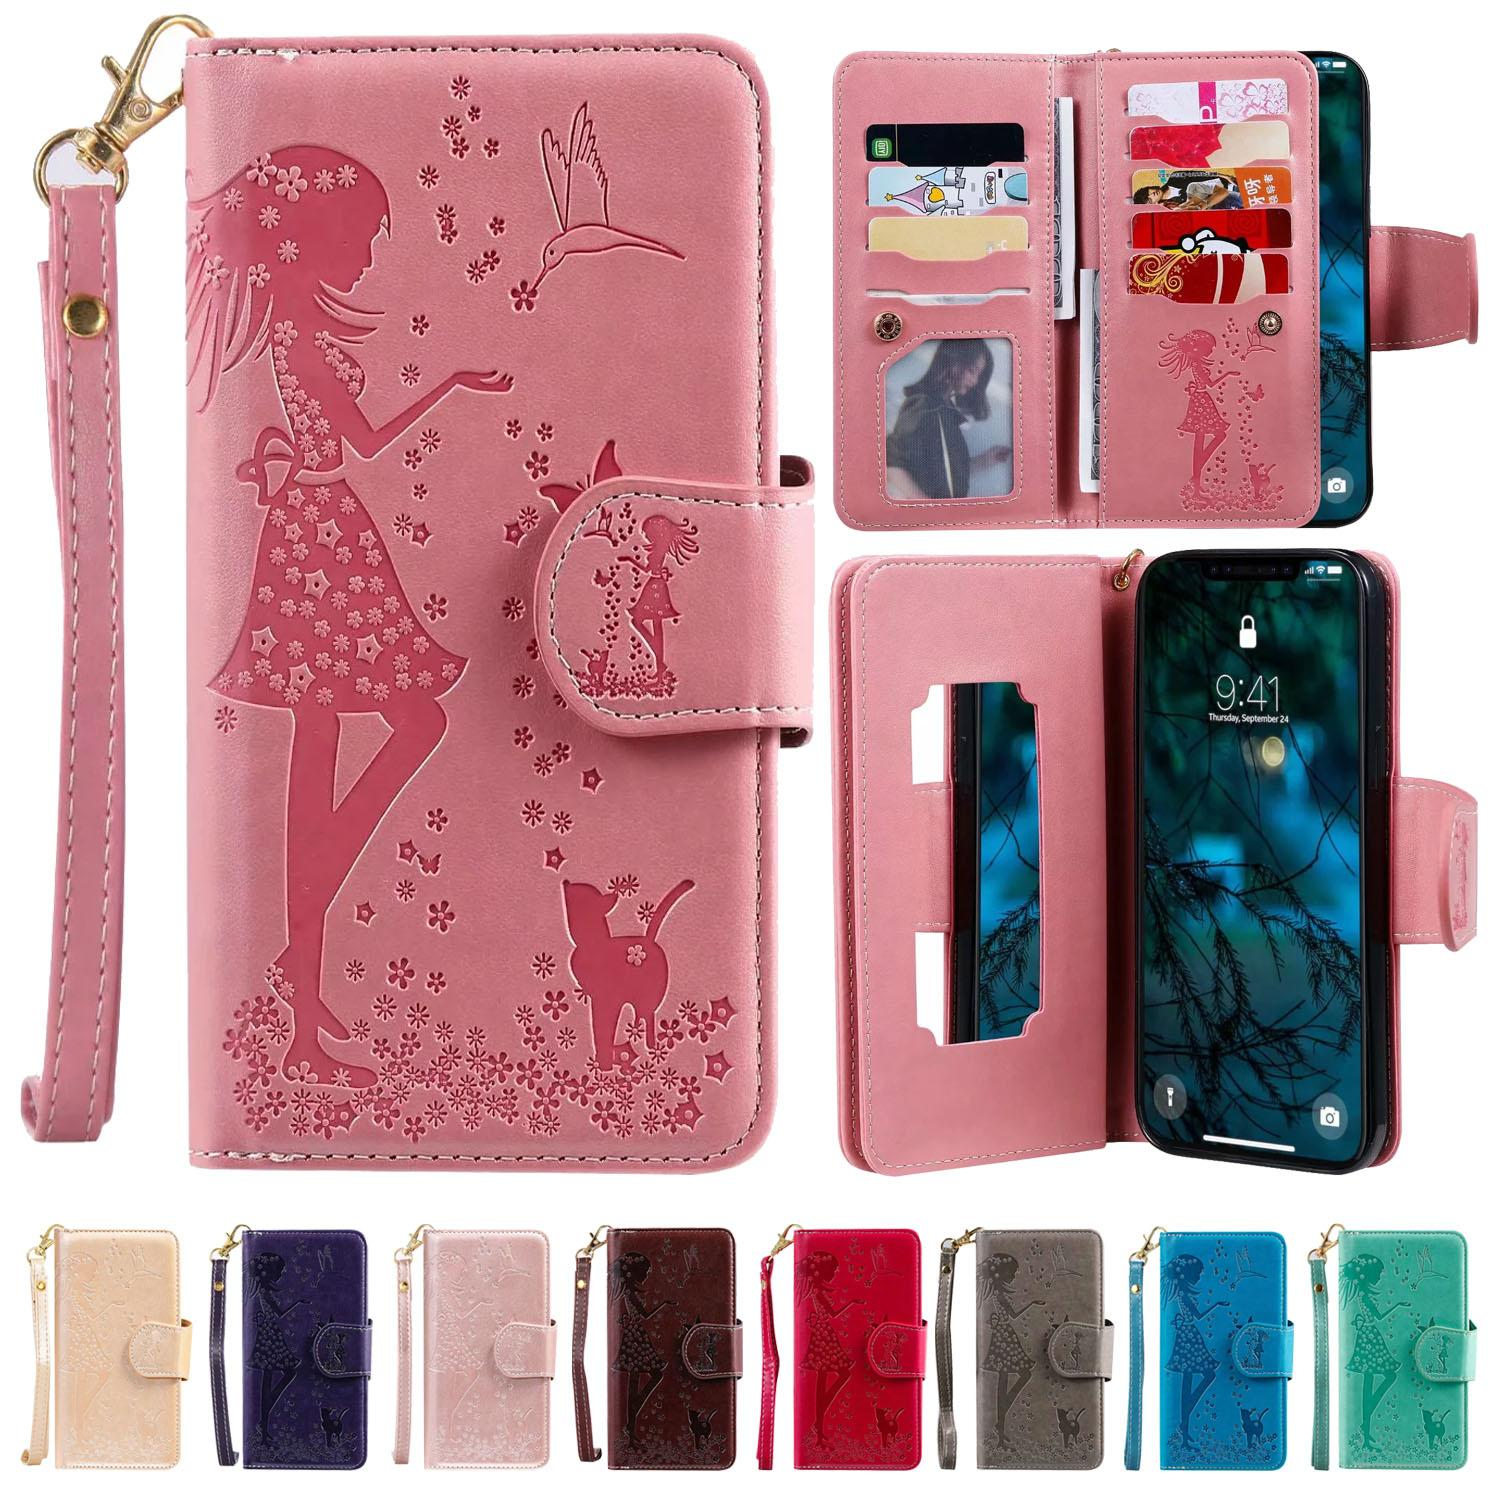 Wallet Phone Case for iPhone 12 Mini 11 Pro X XR XS Max 7 8 Plus Samsung S20 Ultra Pretty Girl Embossing 9 Card Slots Flip Stand Cover Case